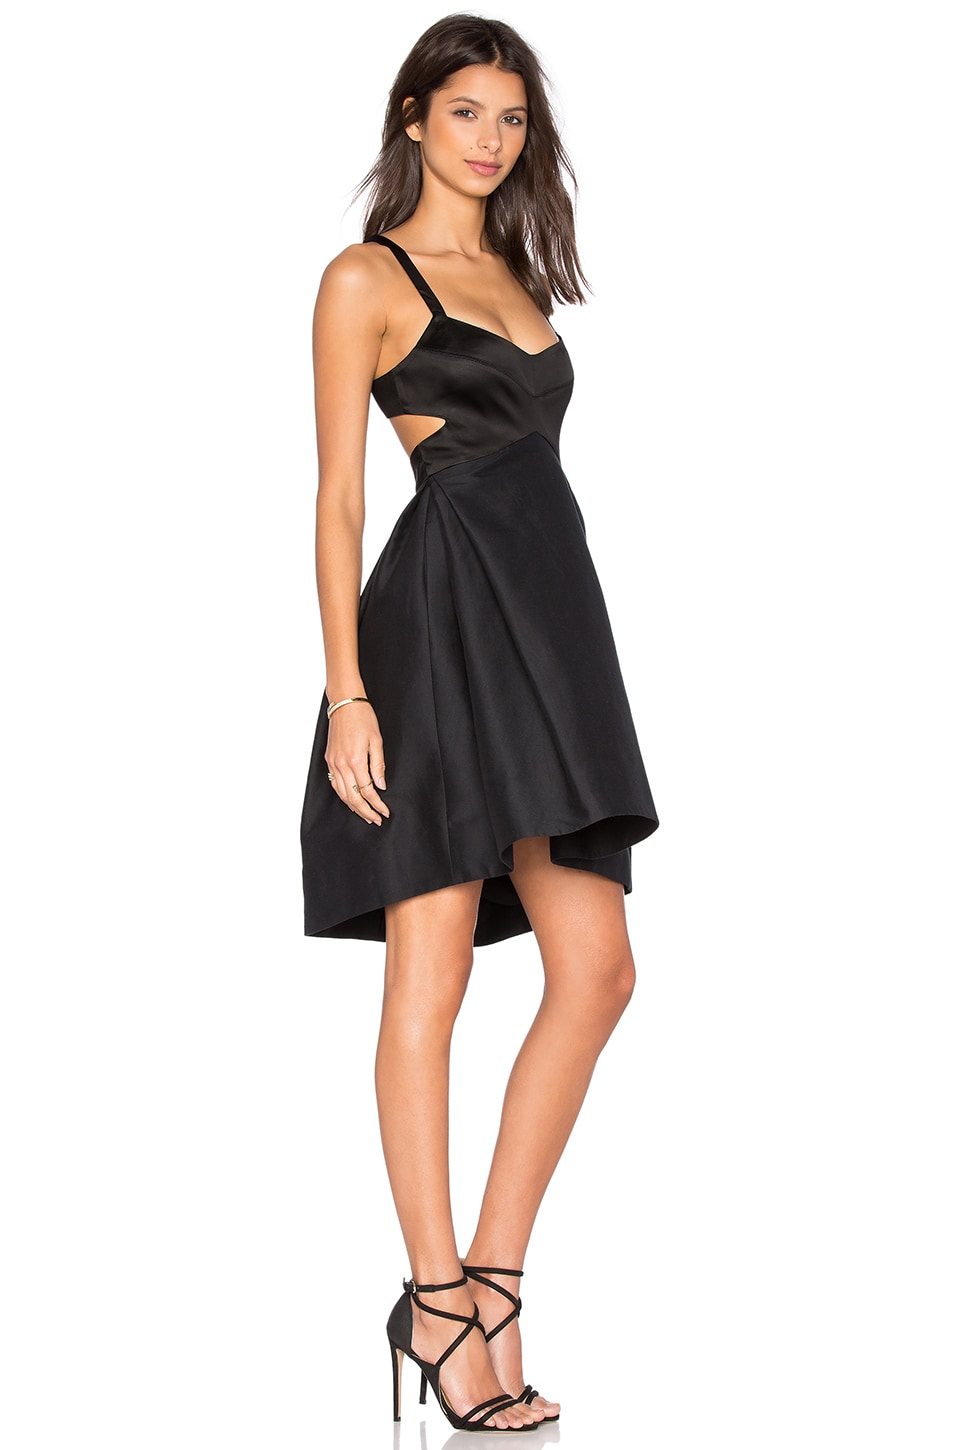 Halston Heritage Halter Cut Out Dress in Black